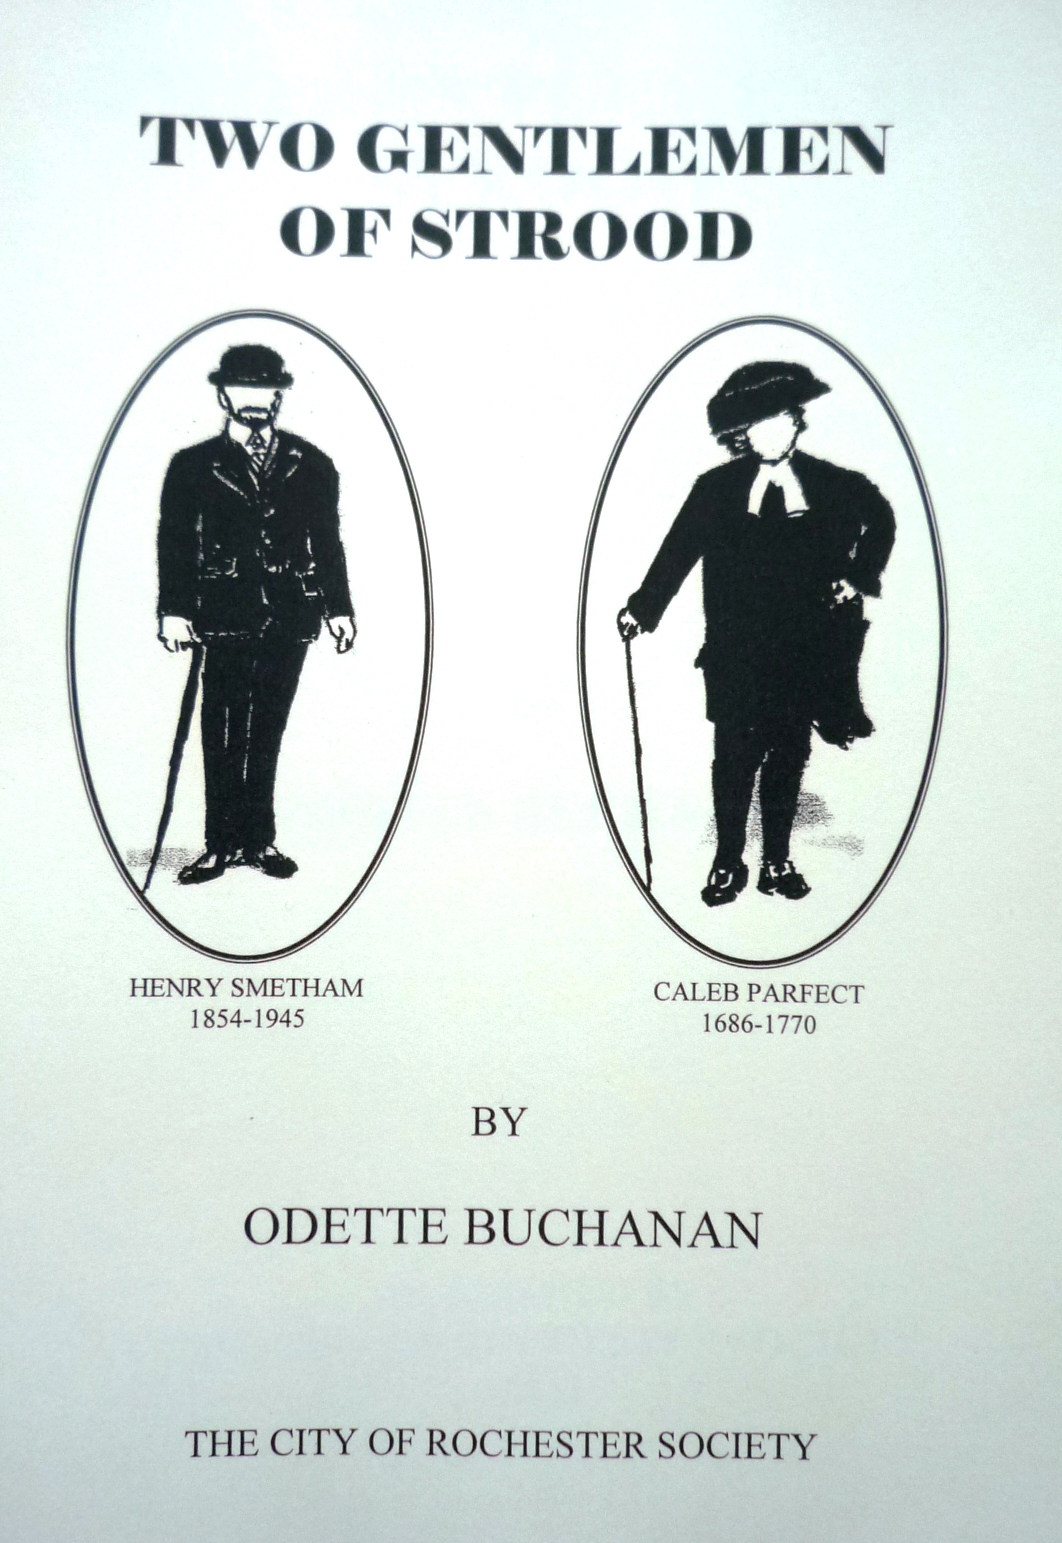 Two Gentlemen of Strood